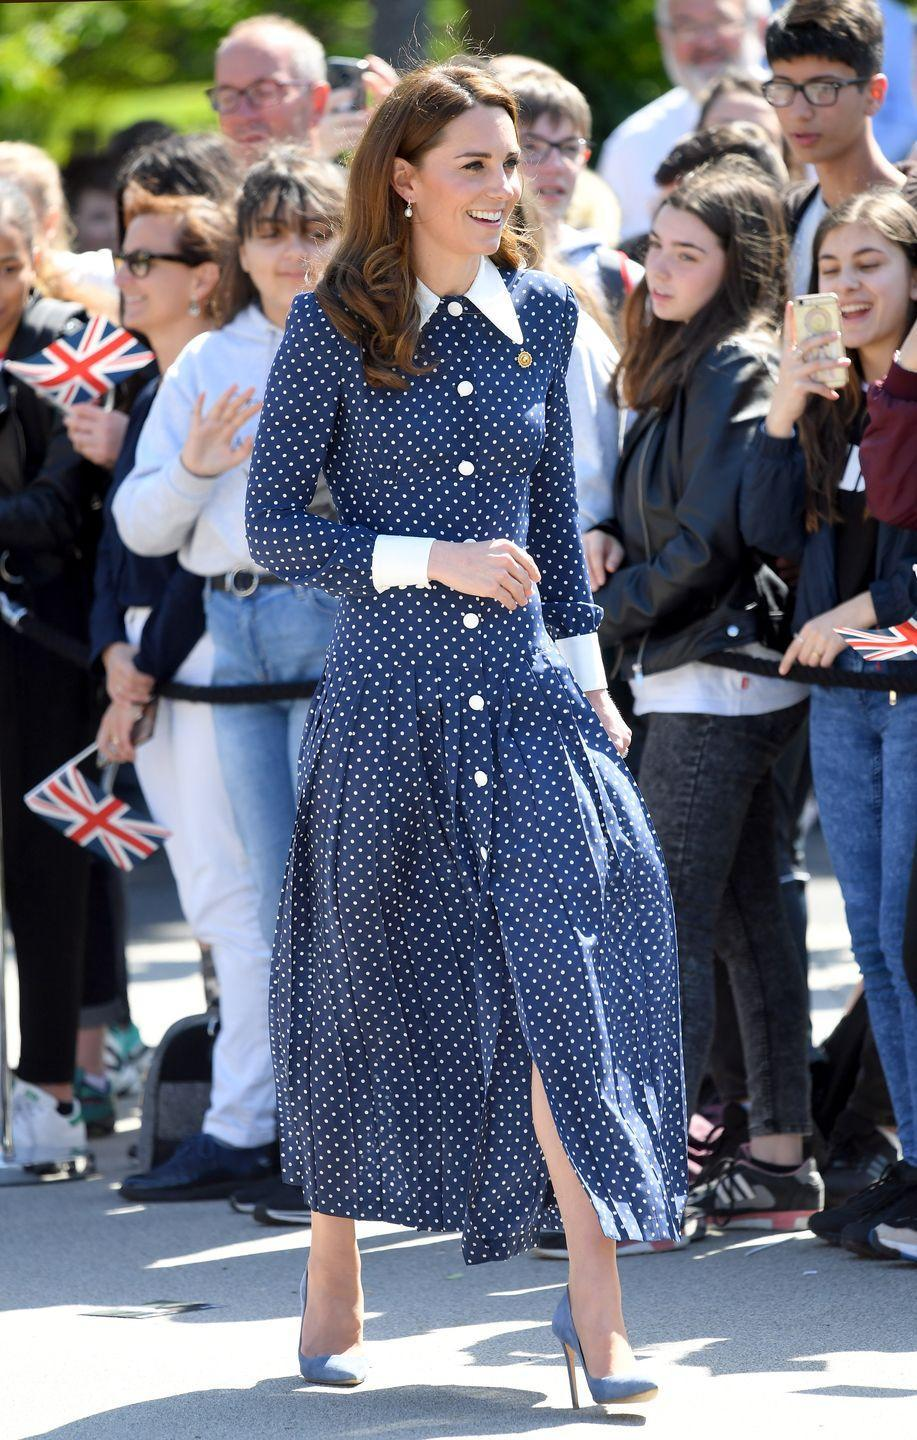 <p>The Duchess re-wore this Alessandra Rich dress to visit a D-Day exhibition at Bletchley Park, to mark the 75th anniversary of the D-Day landings.</p>